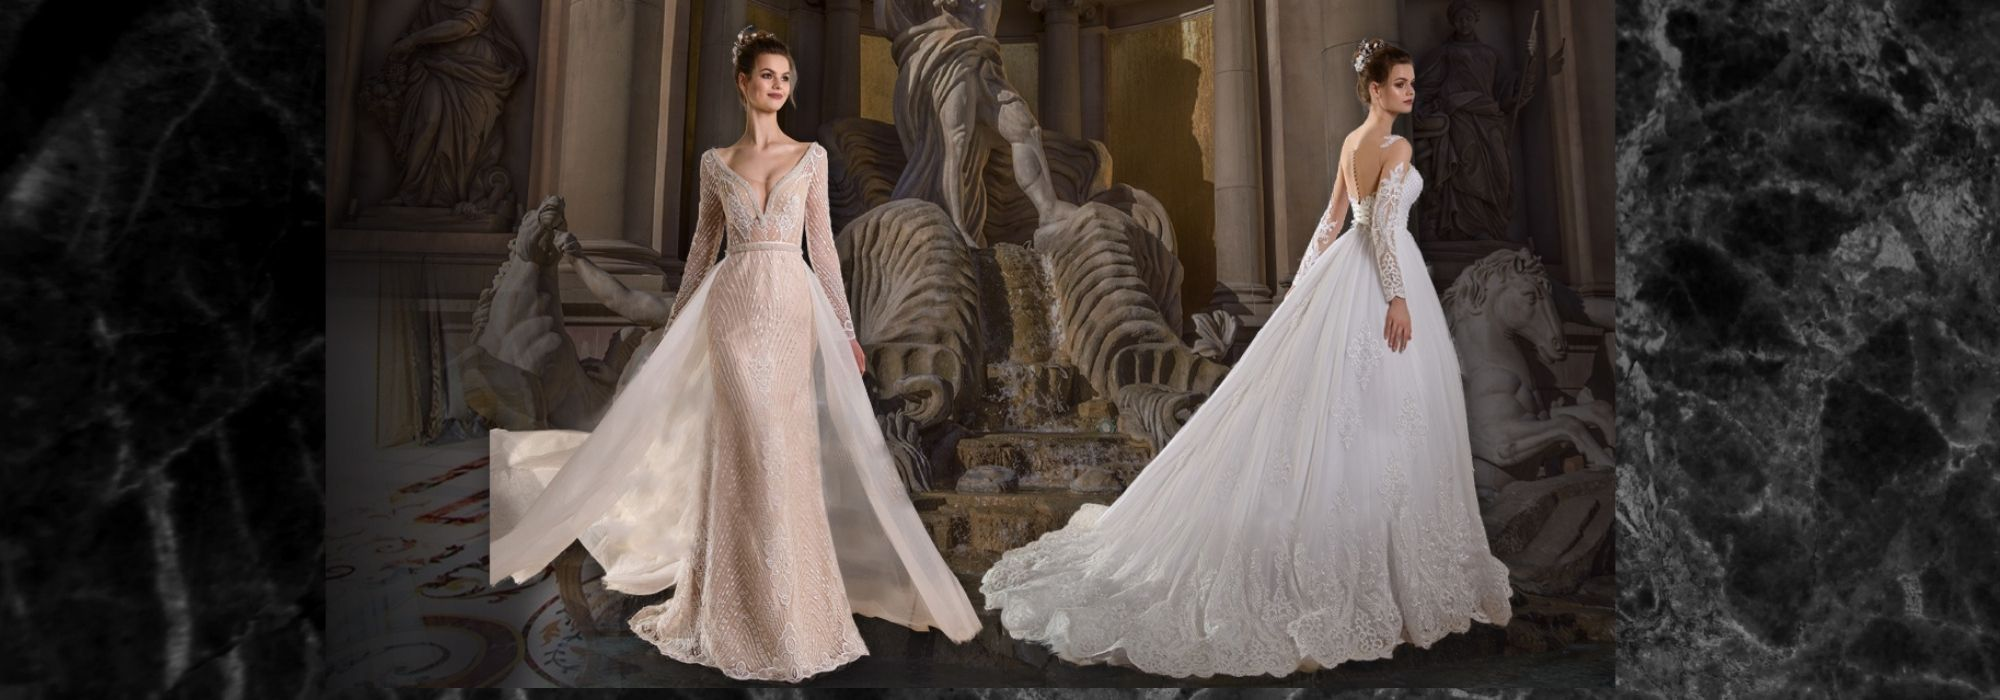 7 STUNNING TIPS TO BUY THE BEST WEDDING GOWN